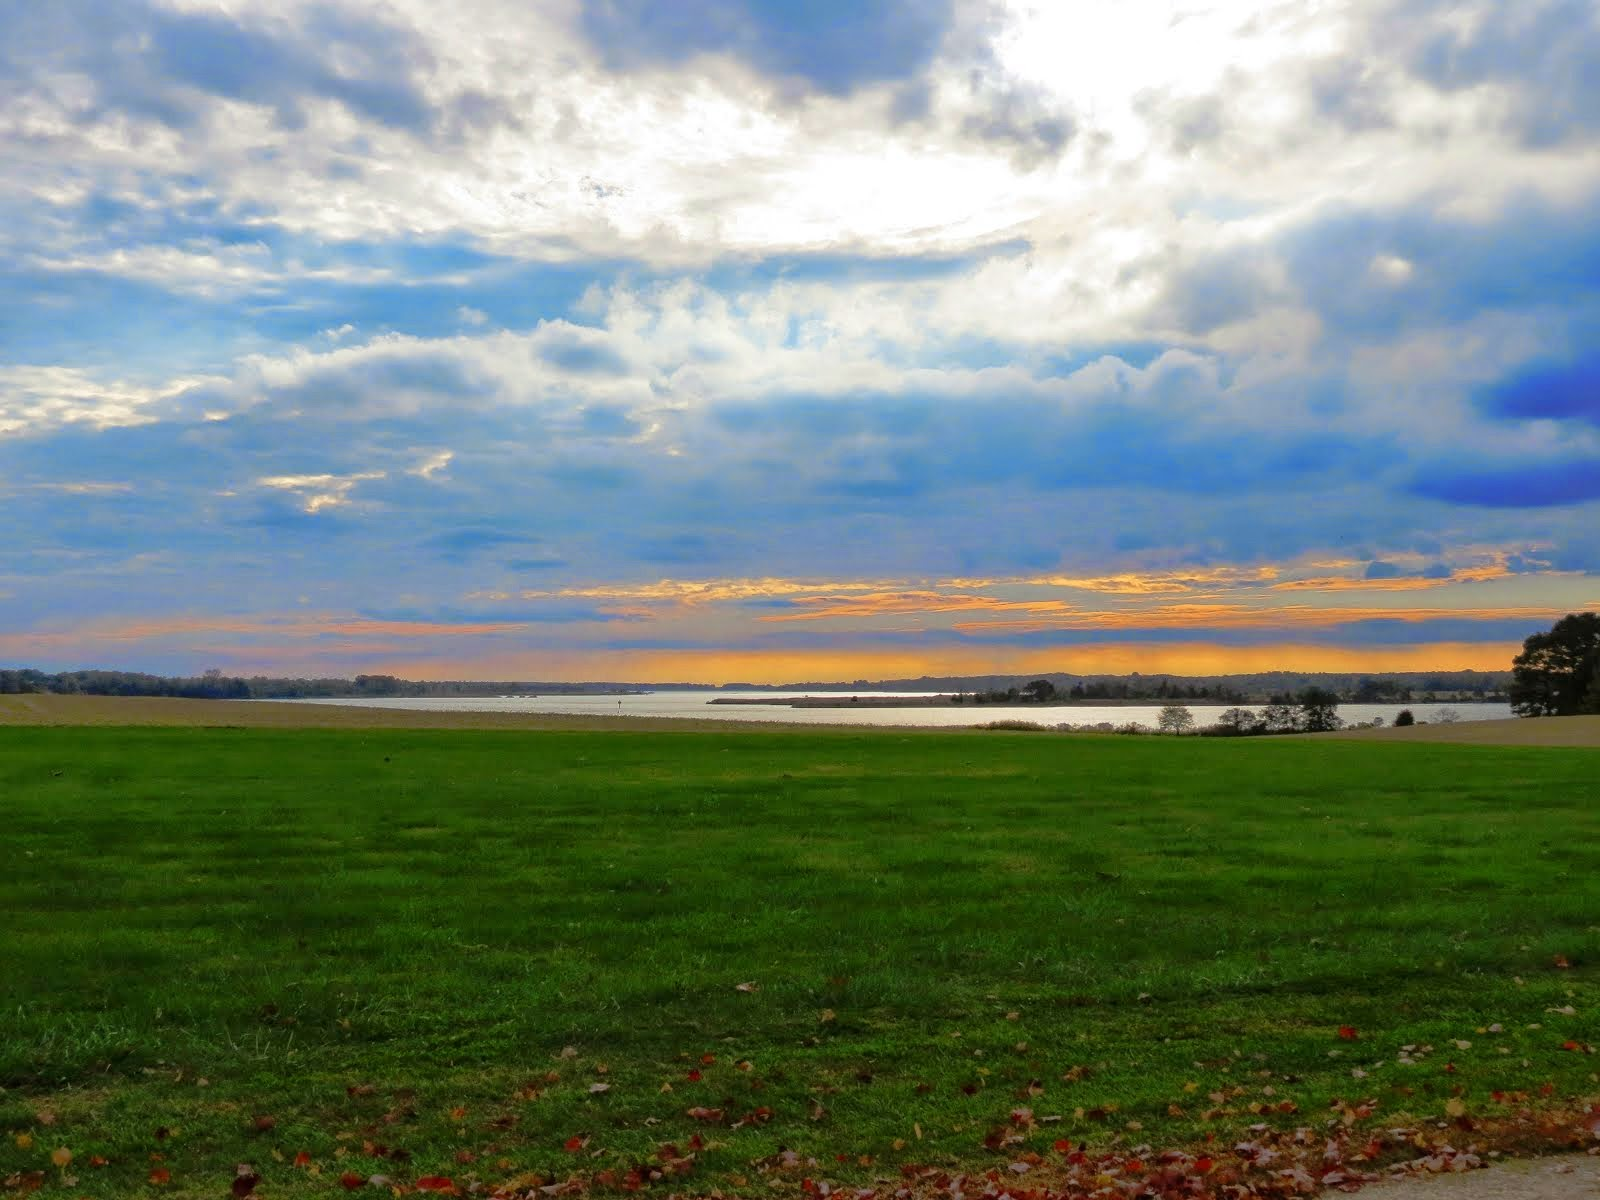 CHESAPEAKE LAND AND WATER (CLICK PICTURE):